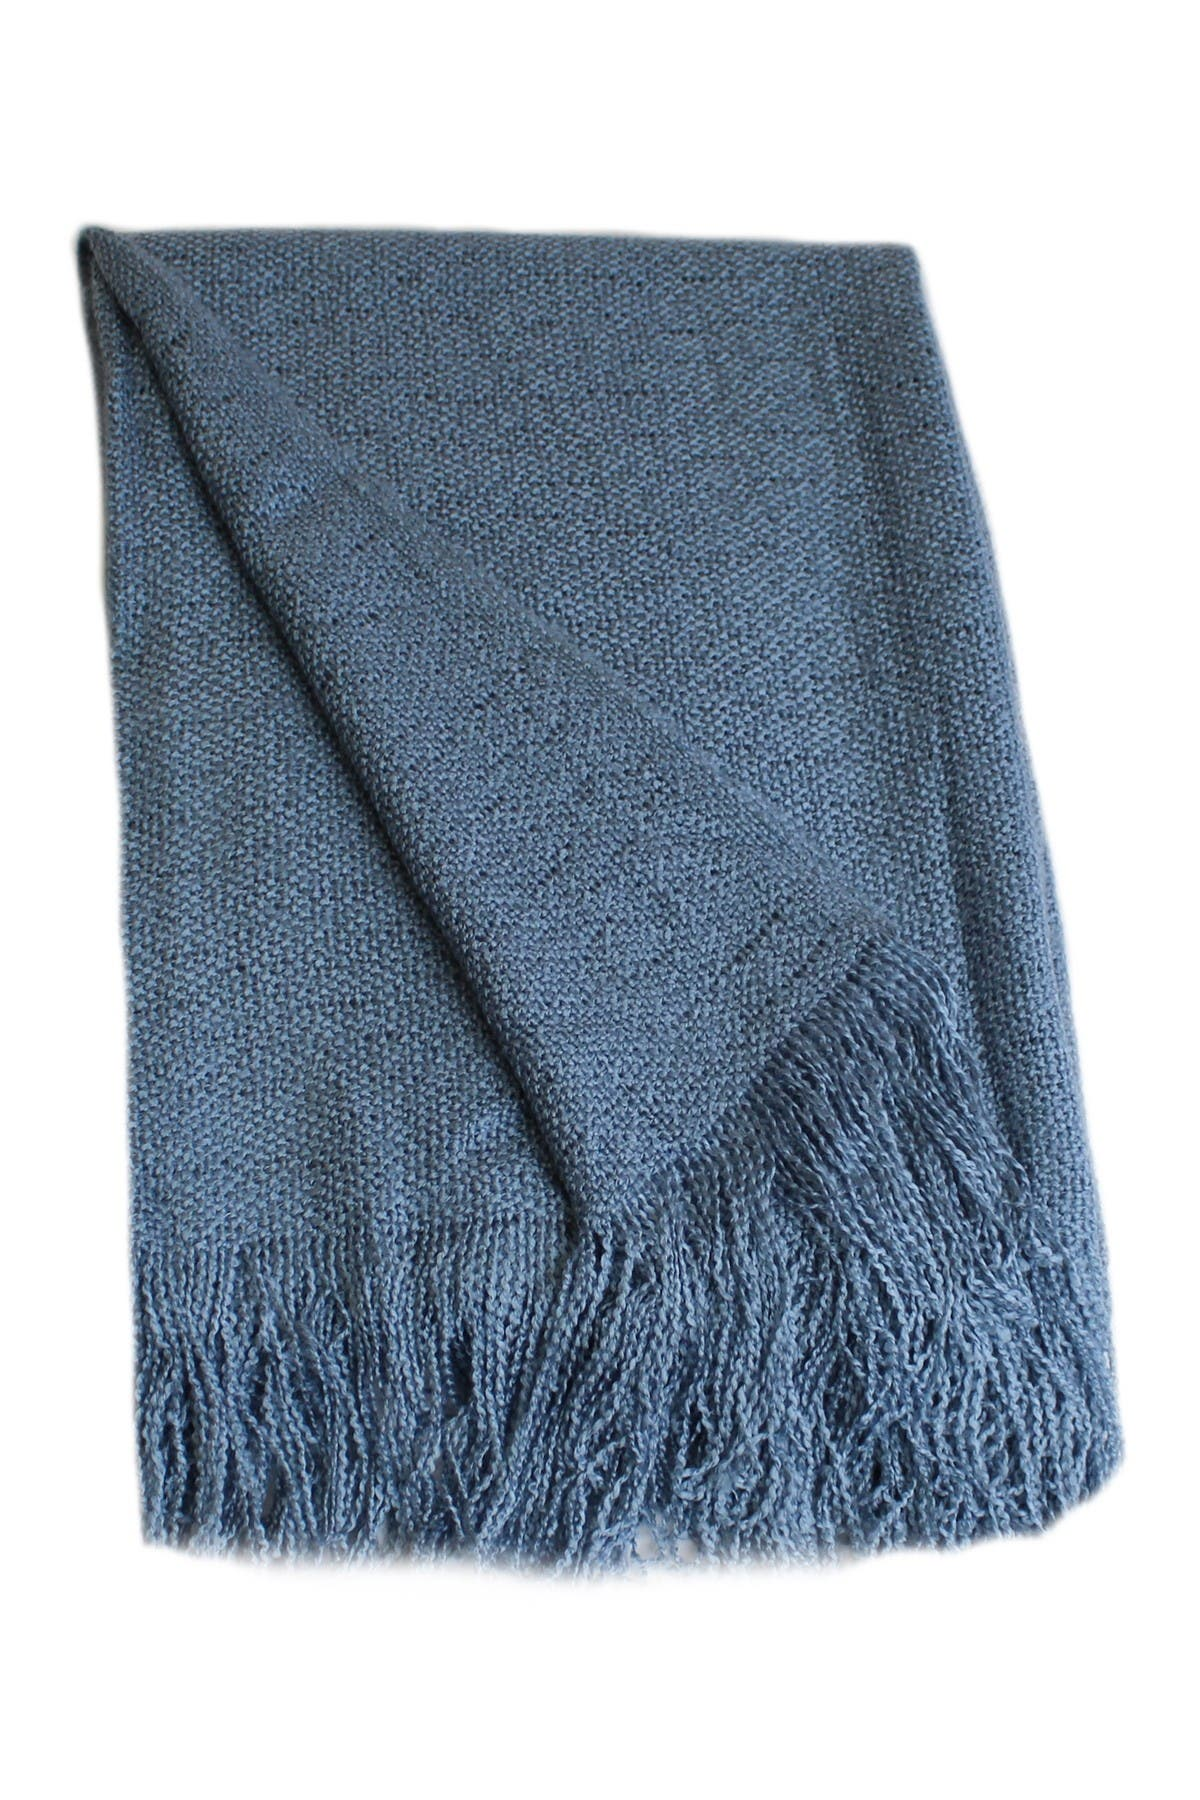 """Image of Belle Epoque Solid Acrylic Throw 50""""X70""""+4"""" Fringe Blue"""